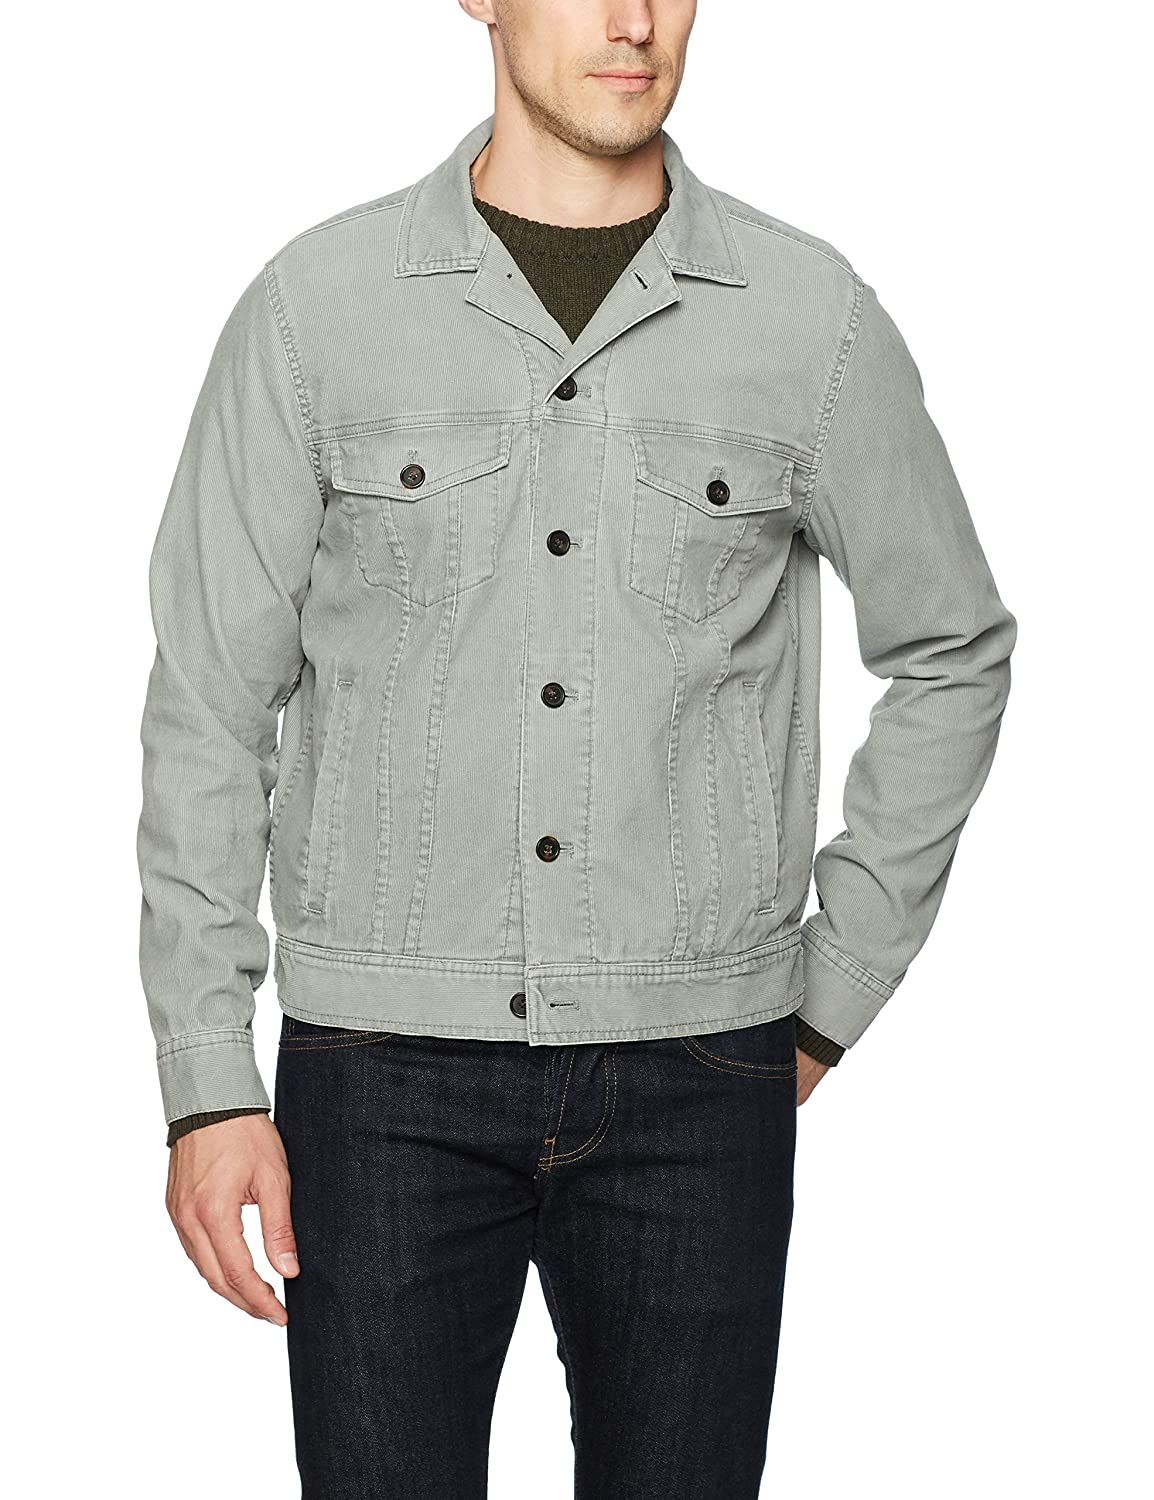 1389a9f55ee Michael Bastian Men s Pigment Dyed Stretch Corduroy Trucker Jacket at  Amazon Men s Clothing store